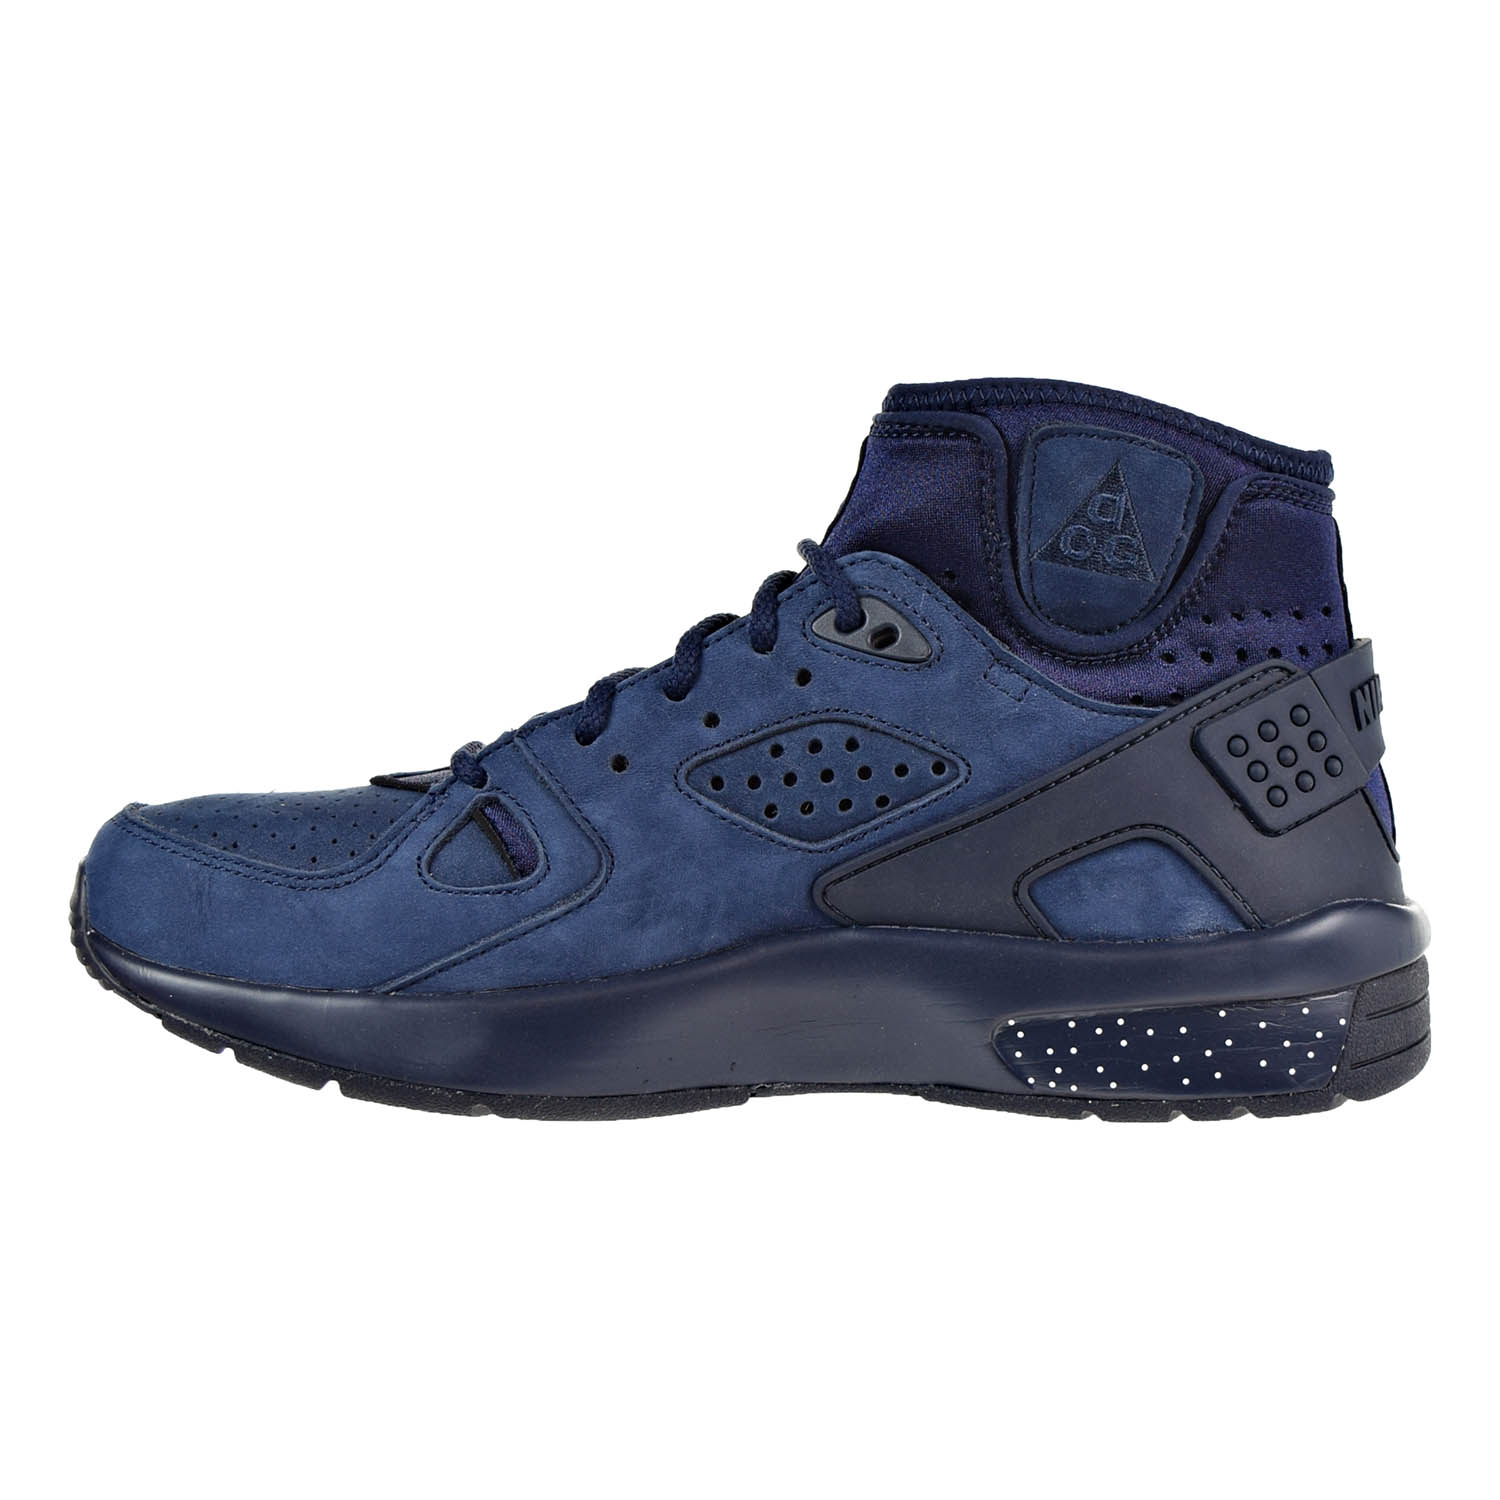 Nike Mowabb Men's Shoes Obsidian/Dark Obsidian 882686-400